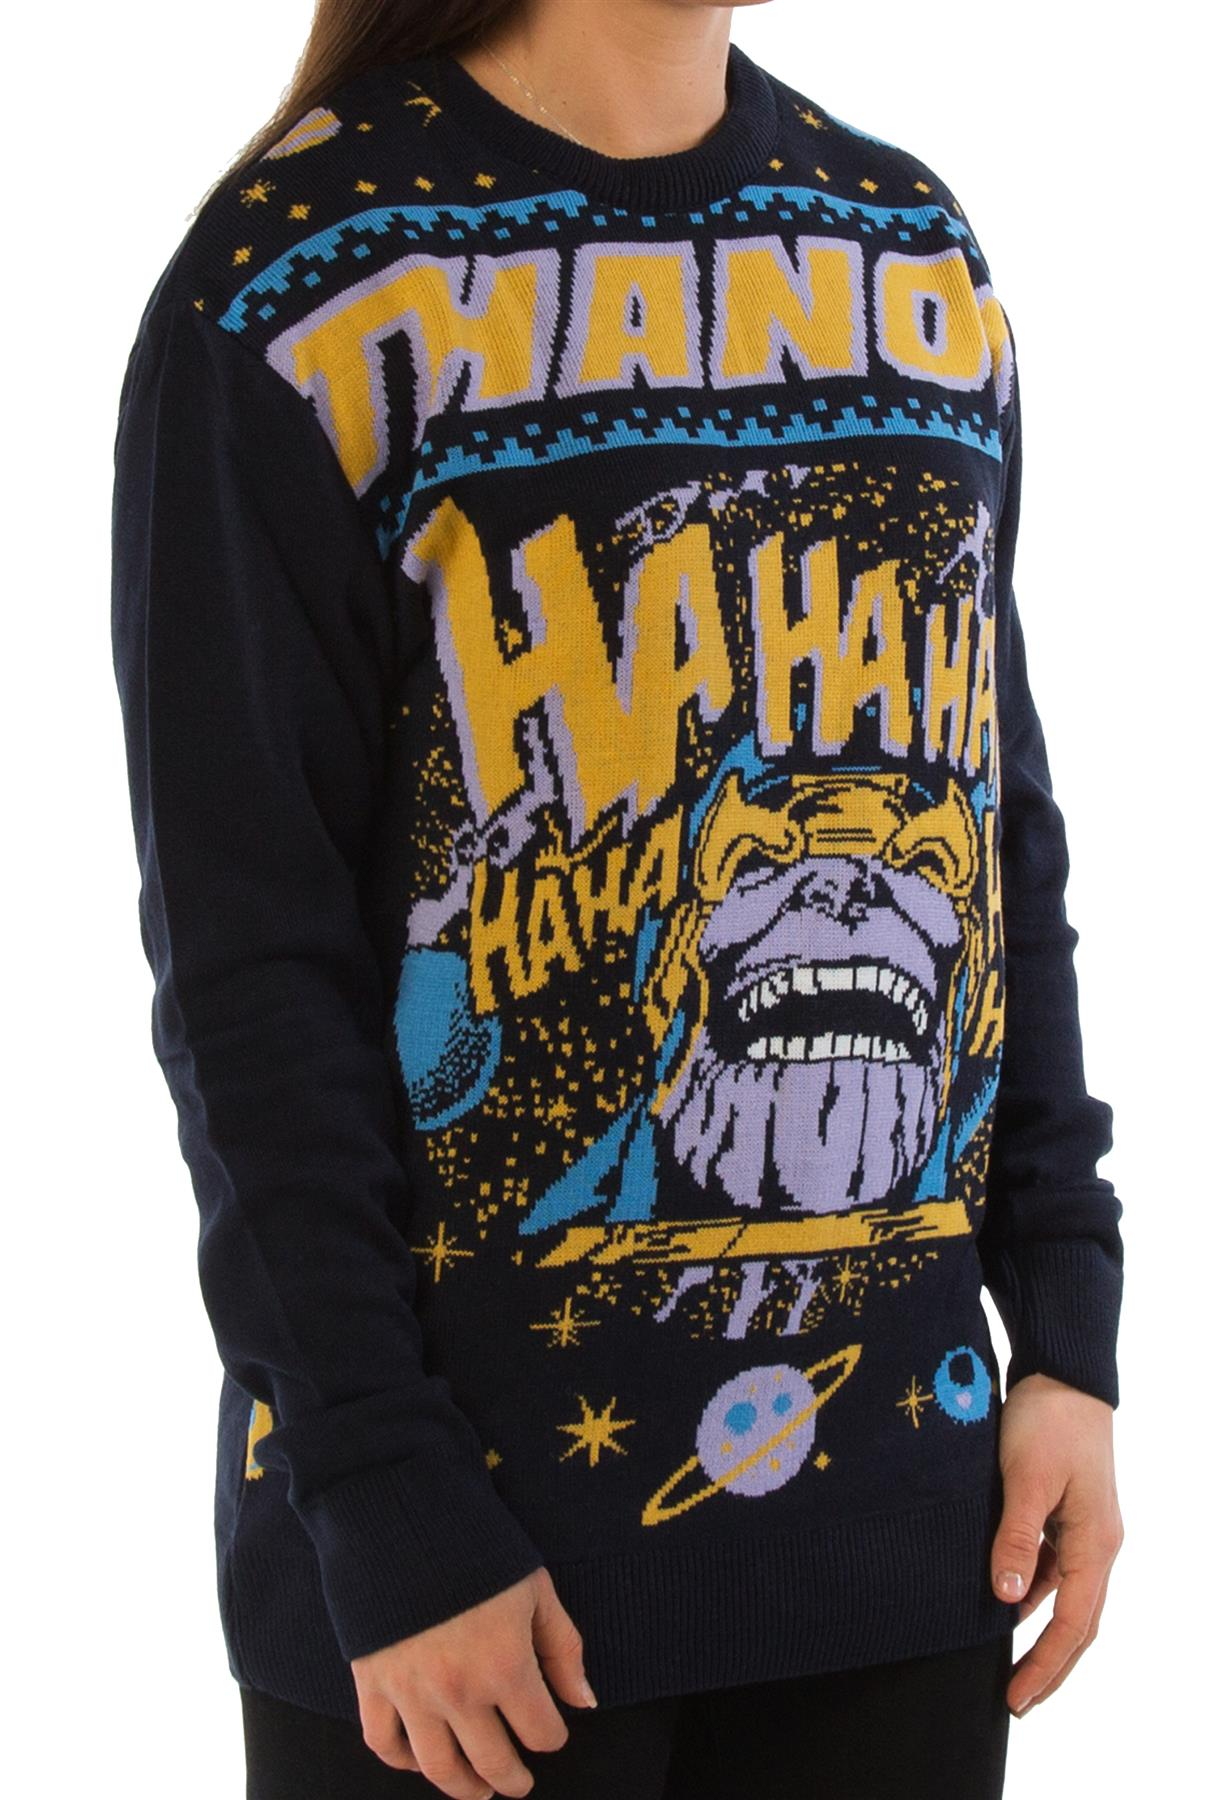 Marvel Comics Thanos Navy Unisex Christmas Knitted Jumper London Co